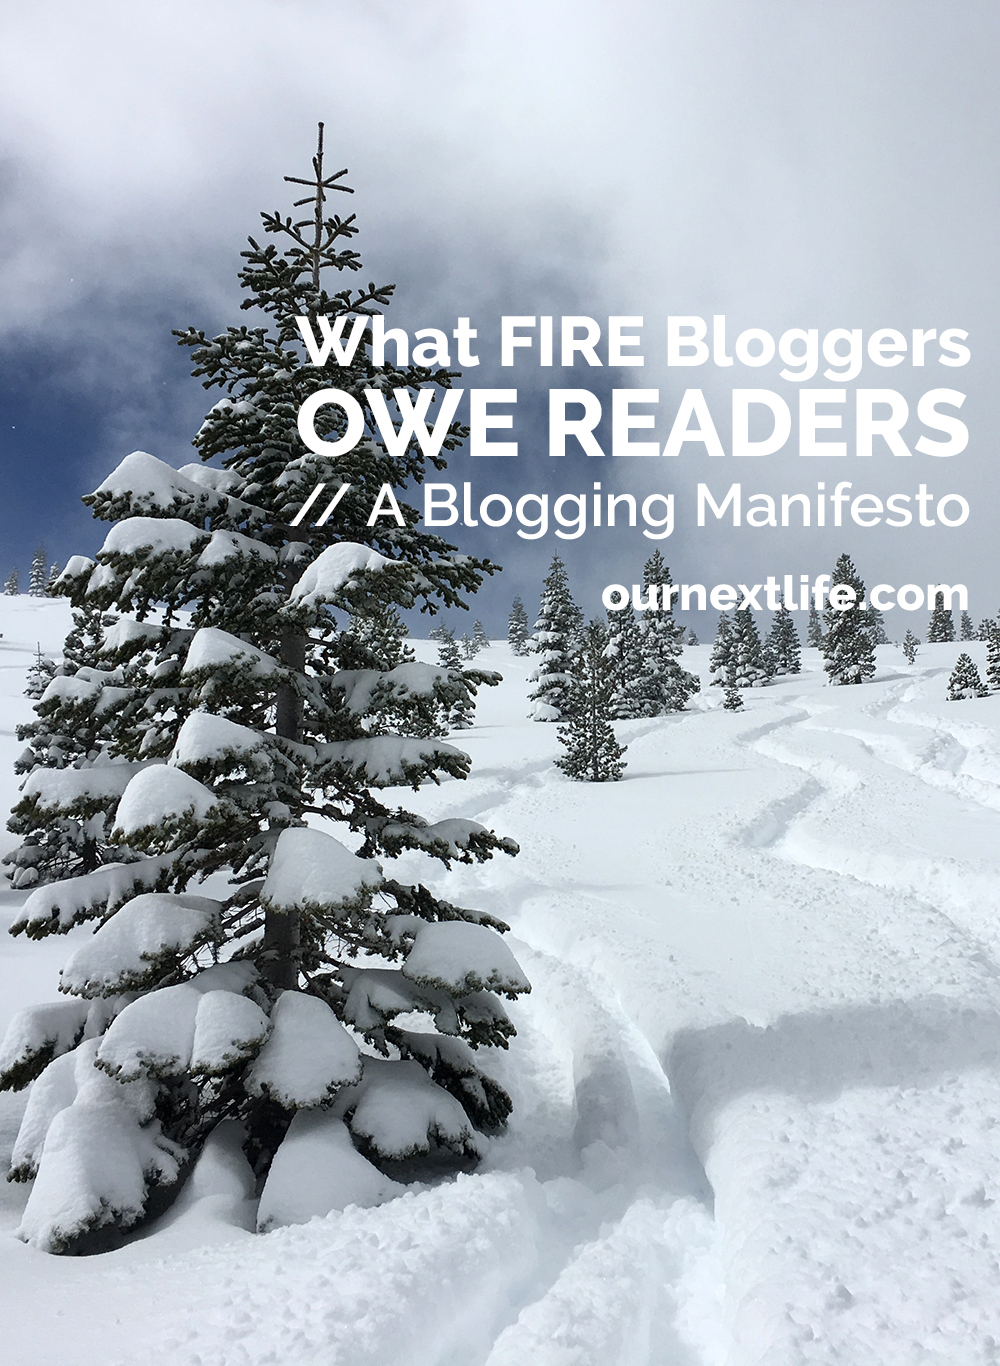 What FIRE Bloggers Owe Readers: A Blogging Manifesto // Our Next Life // I love our financial independence/early retirement blog community like crazy, but there are some things we can all be doing to serve readers better. Some of them are simple, and some aren't. But we owe it to our readers to be more transparent and to be more in touch with what our readers are up against.